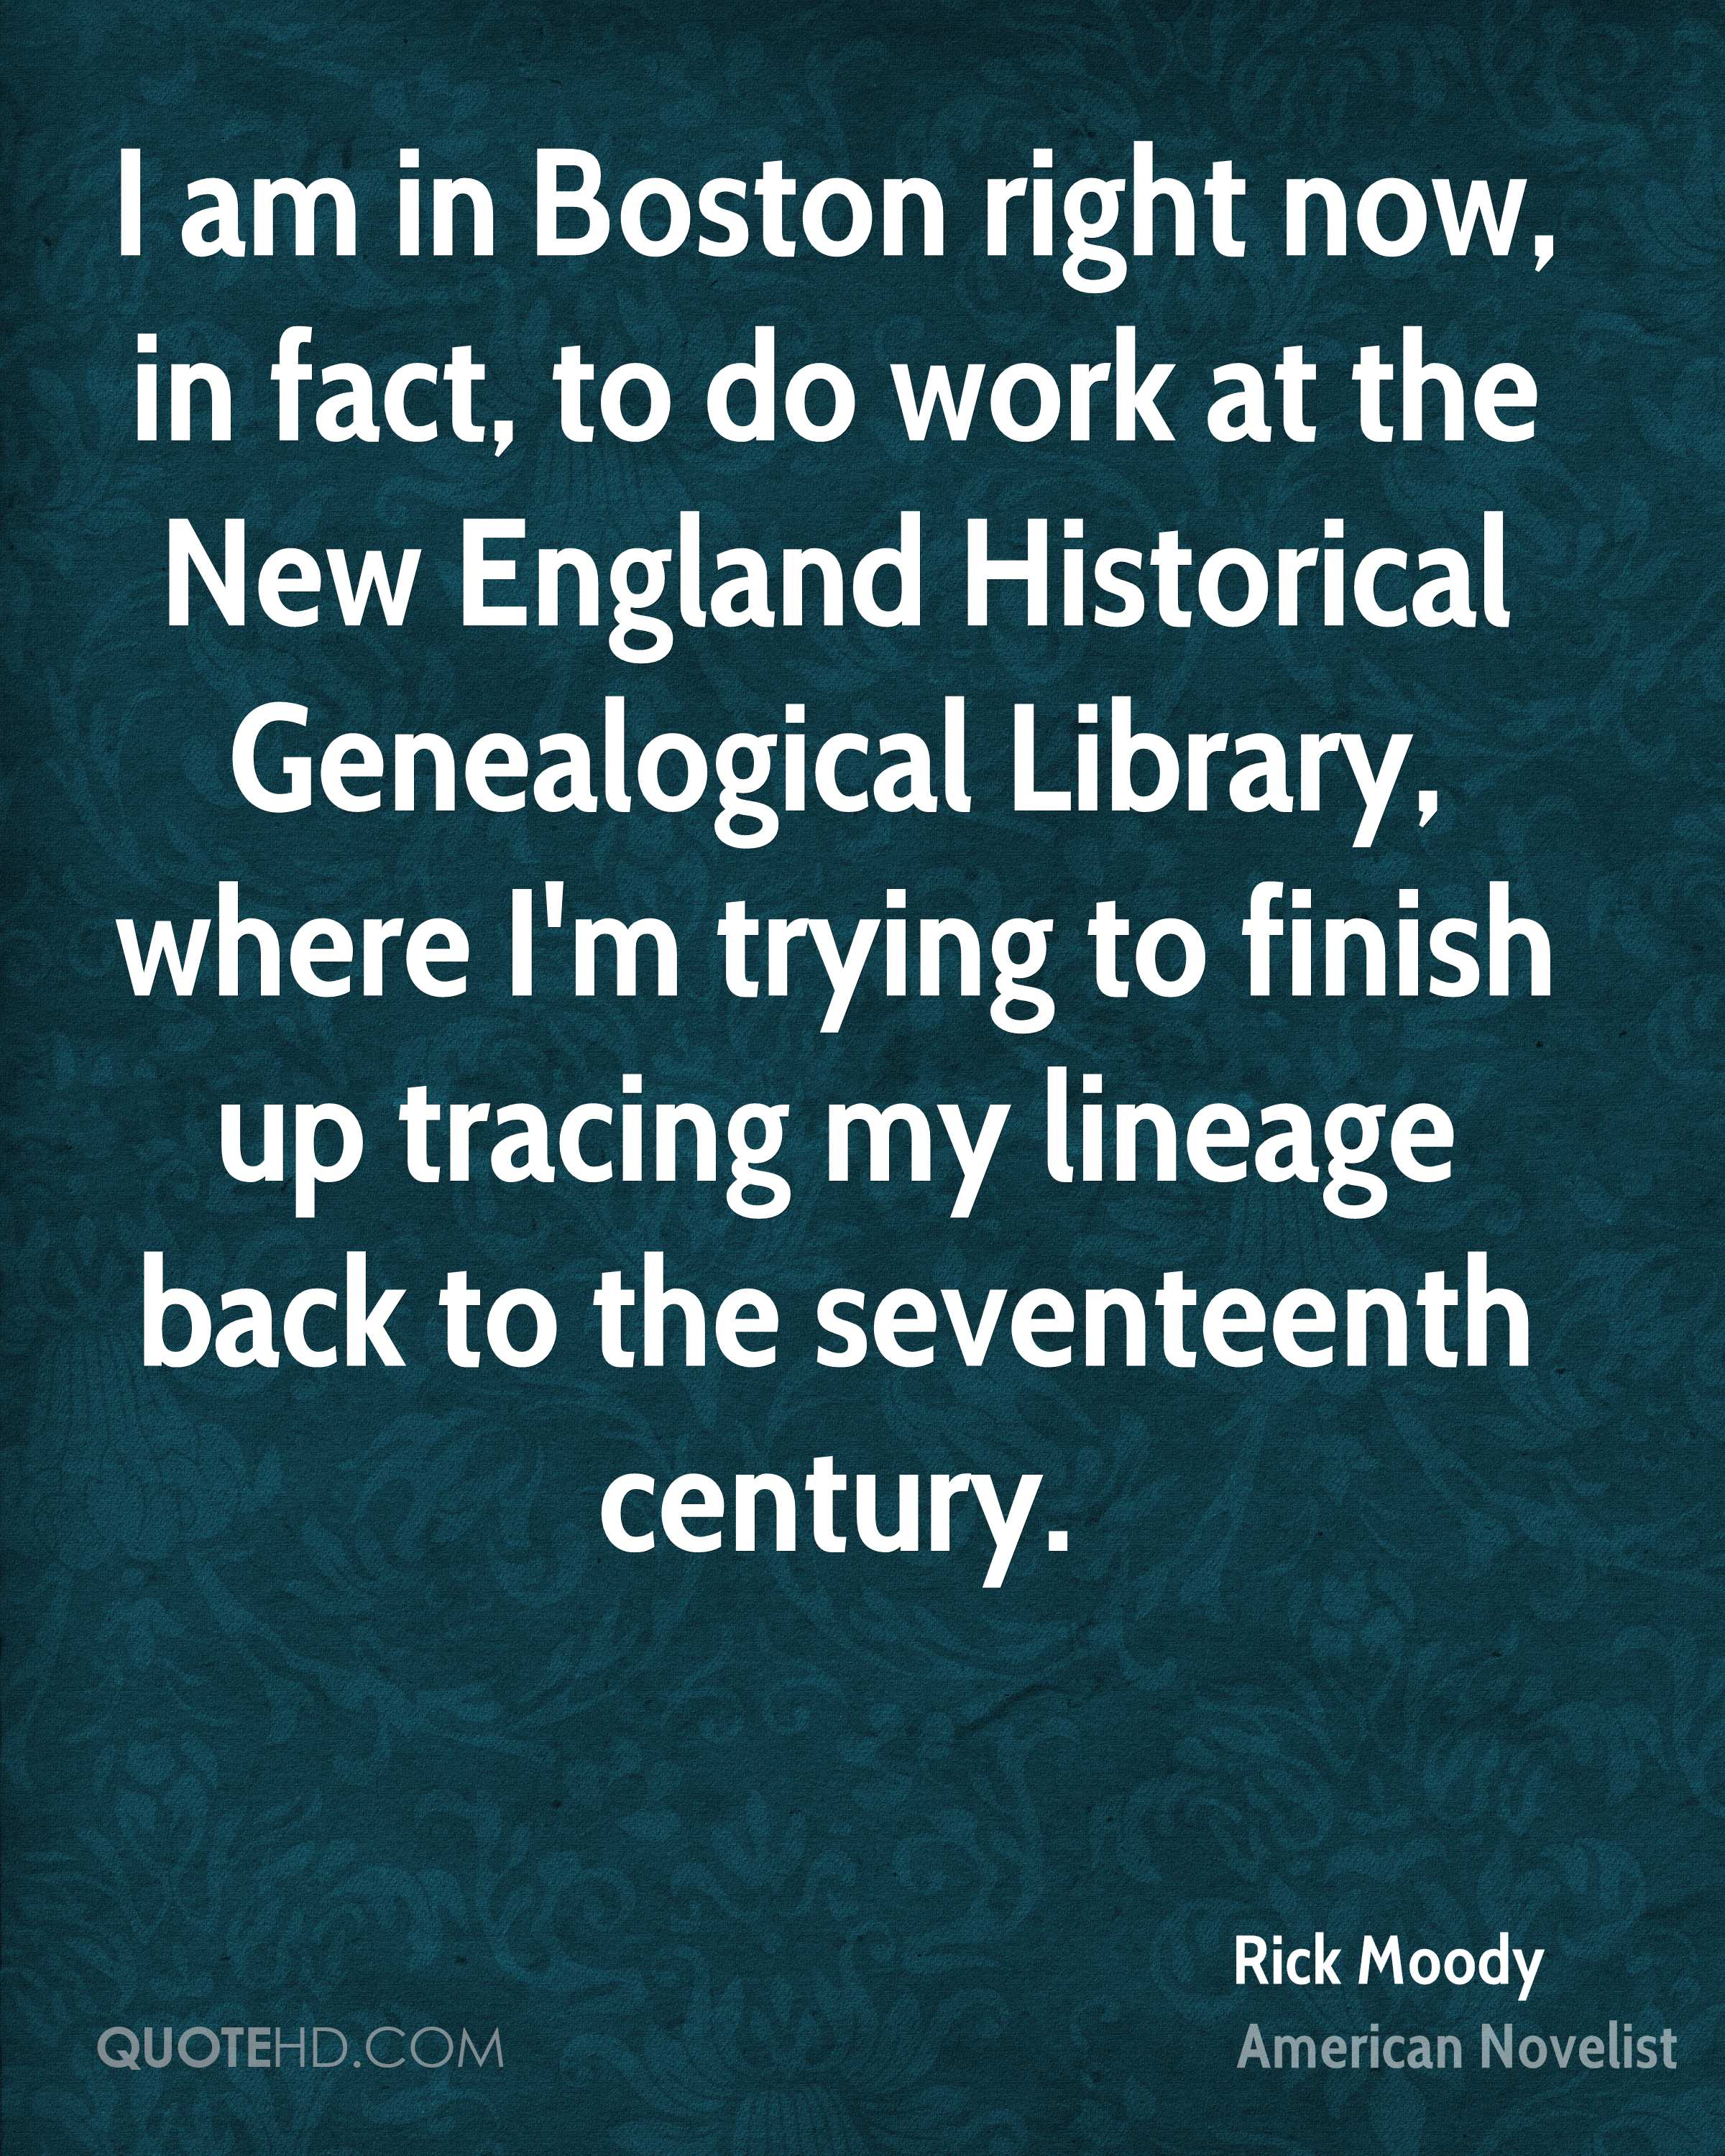 I am in Boston right now, in fact, to do work at the New England Historical Genealogical Library, where I'm trying to finish up tracing my lineage back to the seventeenth century.